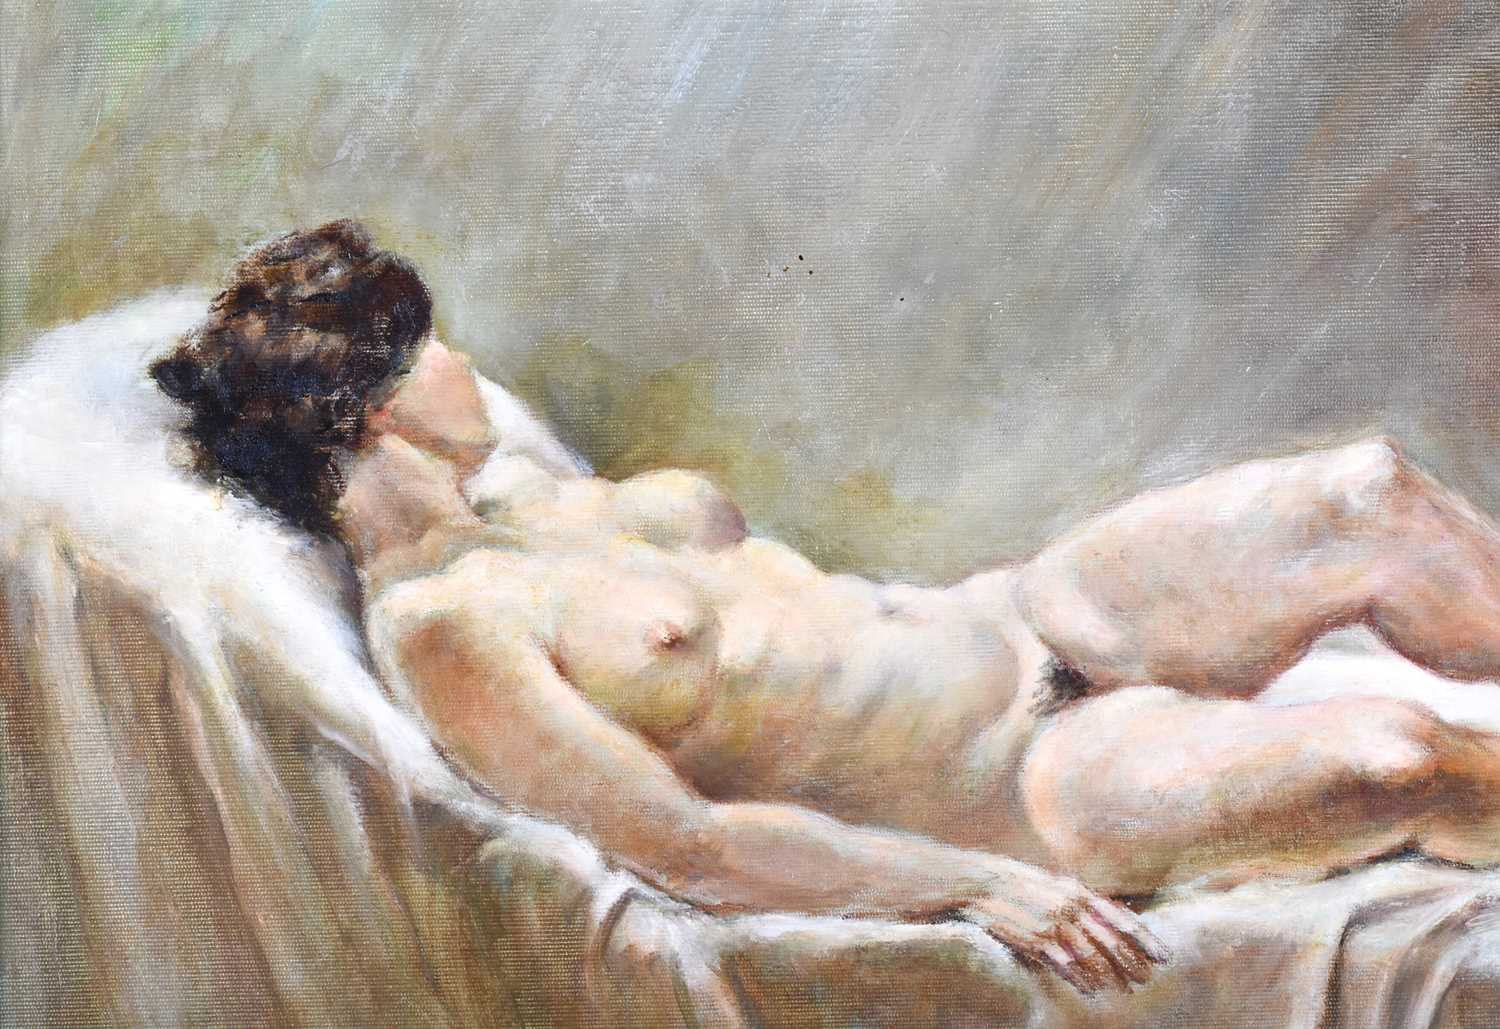 Lot 4 - Franco Matania (1922-2006) Italian/British,a painting of a recumbent female nude on a bed, signed F.